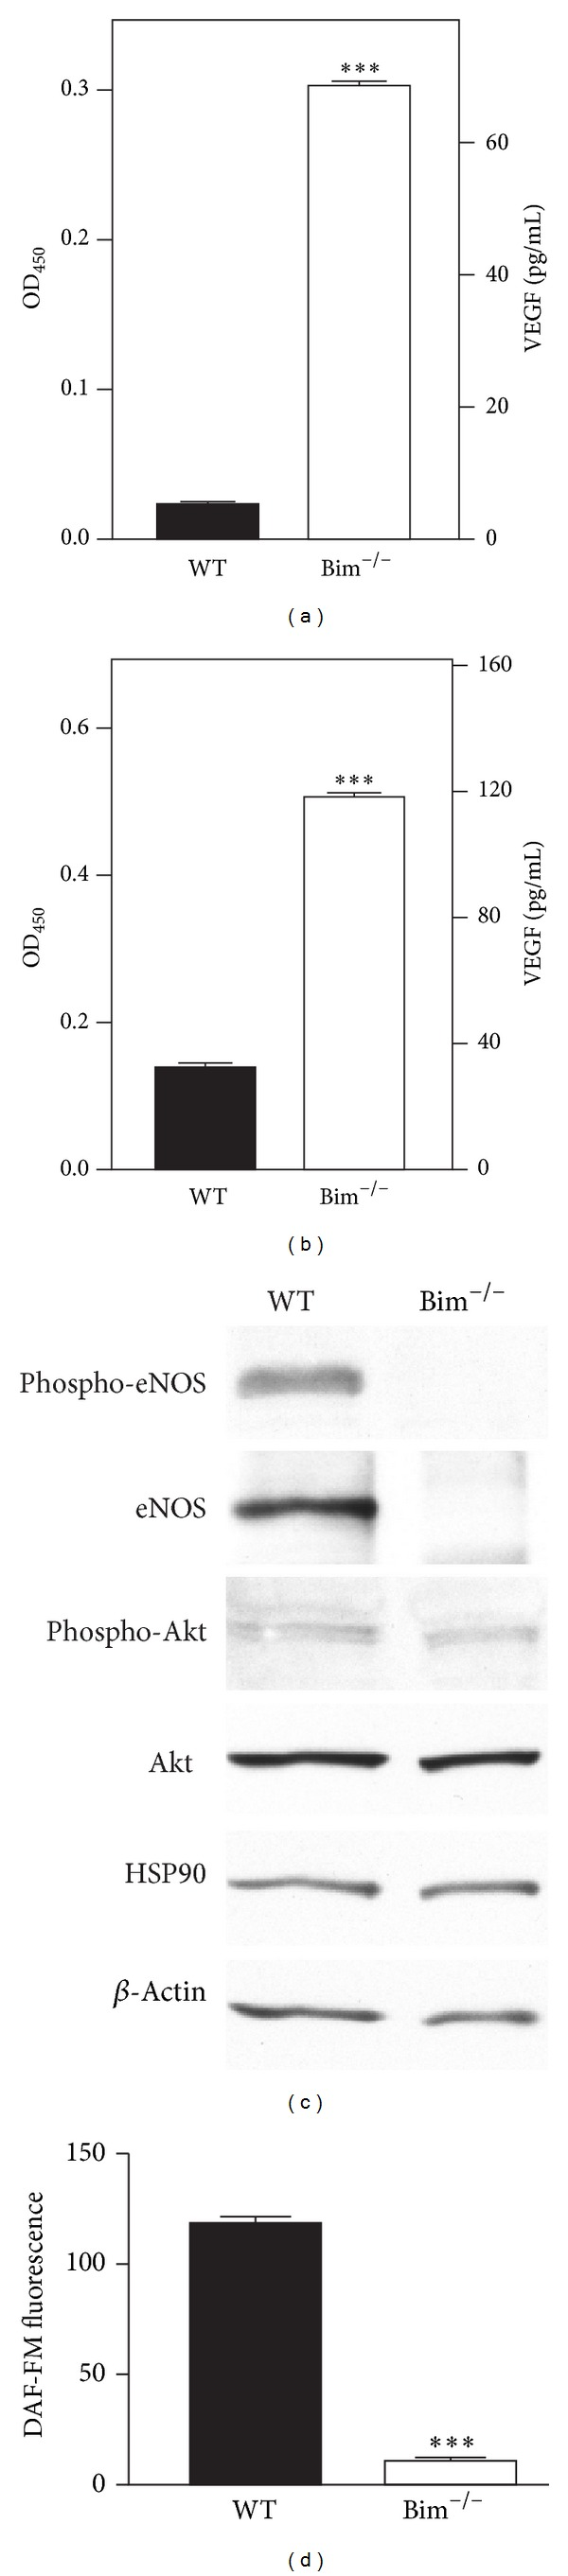 Decreased eNOS and increased VEGF expressions in Bim −/− vascular cells. In panels (a) and (b), an immunoassay was used to determine VEGF levels (pg/mL) in retinal endothelial cells (a) and pericytes (b) from wild-type and Bim −/− mice. Protein lysates (20 μ g) from wild-type and Bim −/− retinal endothelial cells were analyzed by Western blot analysis for the expression of phospho-eNOS, eNOS, HSP90, phospho-Akt, and Akt (panel (c)). β -Actin expression was assessed as a loading control (panel (c)). In panel (d), the intracellular NO production was determined as analyzed by DAF-FM fluorescence for retinal endothelial cells. Please note that the increased VEGF expression was independent of eNOS expression in Bim −/− endothelial cells (*** P